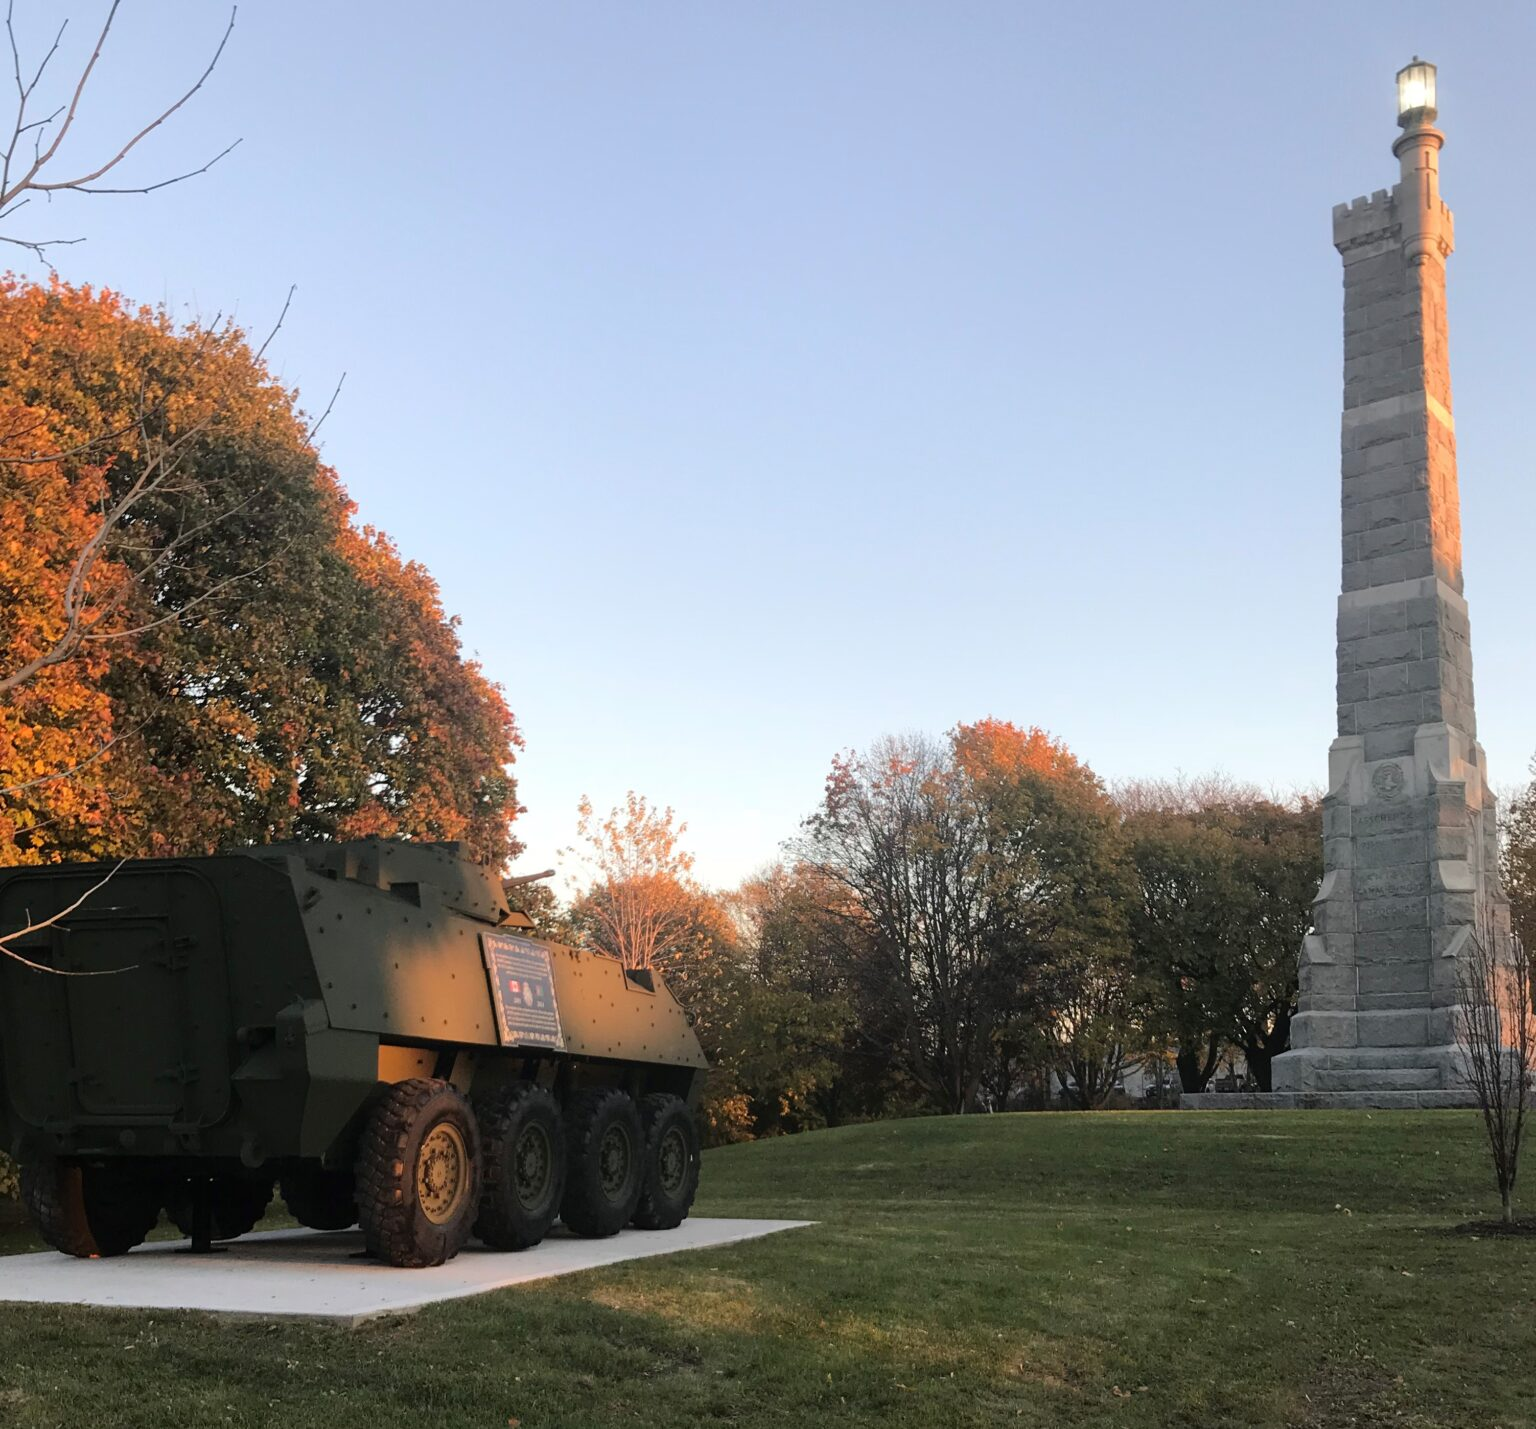 A stone war memorial with an 8-wheeled vehicle in the foreground.